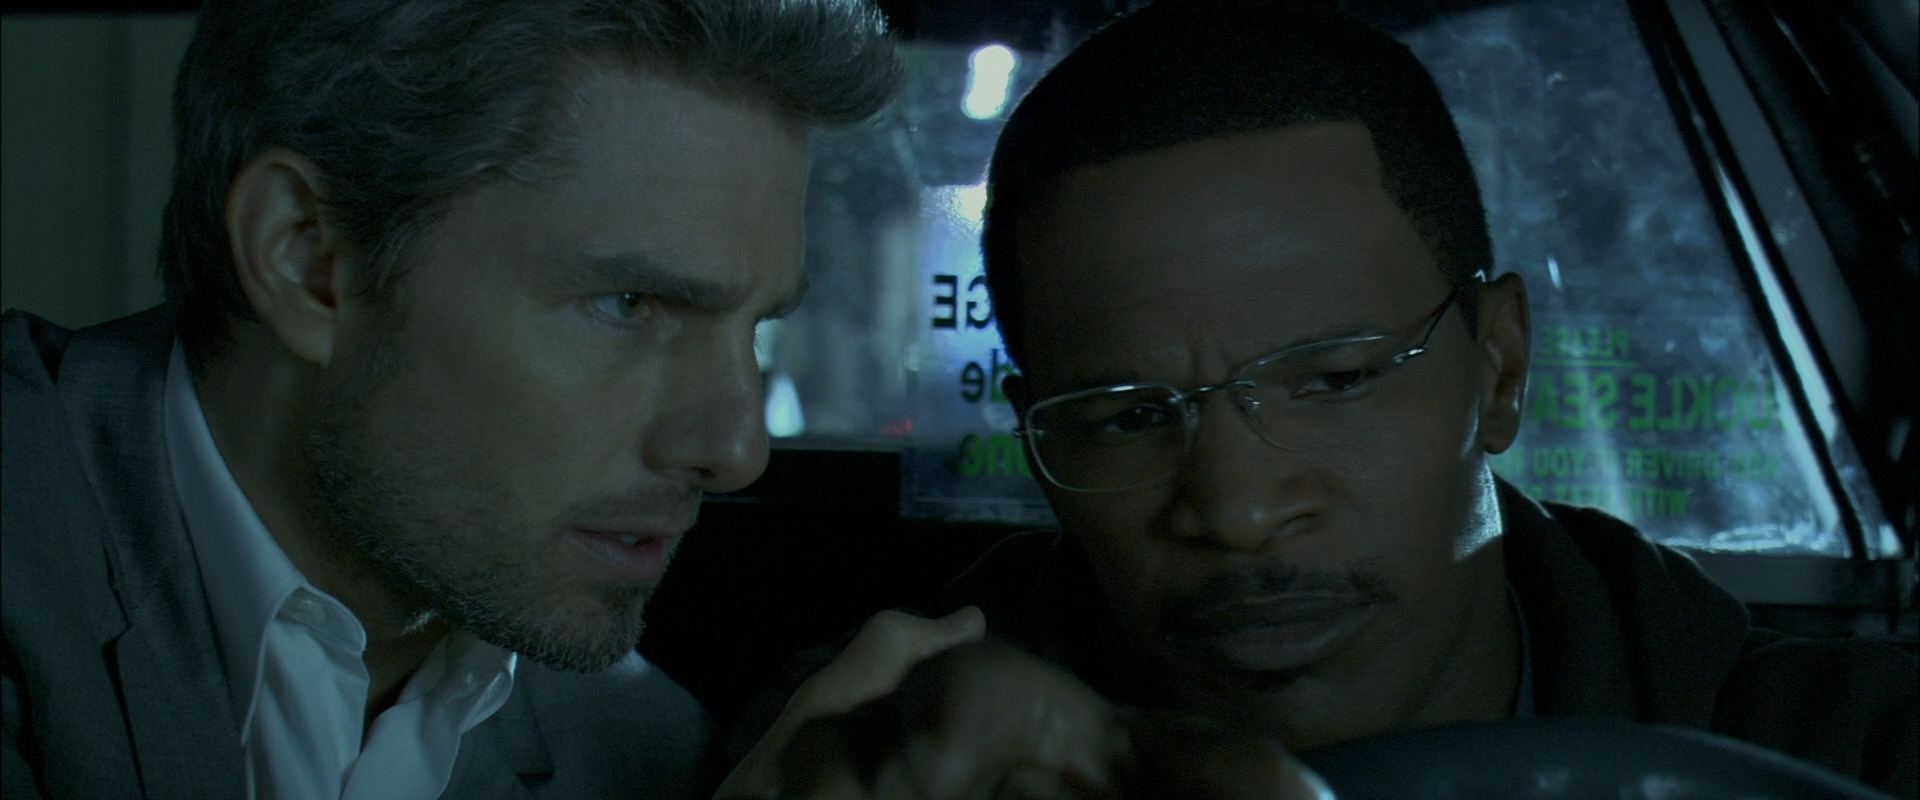 Collateral film 2004.png